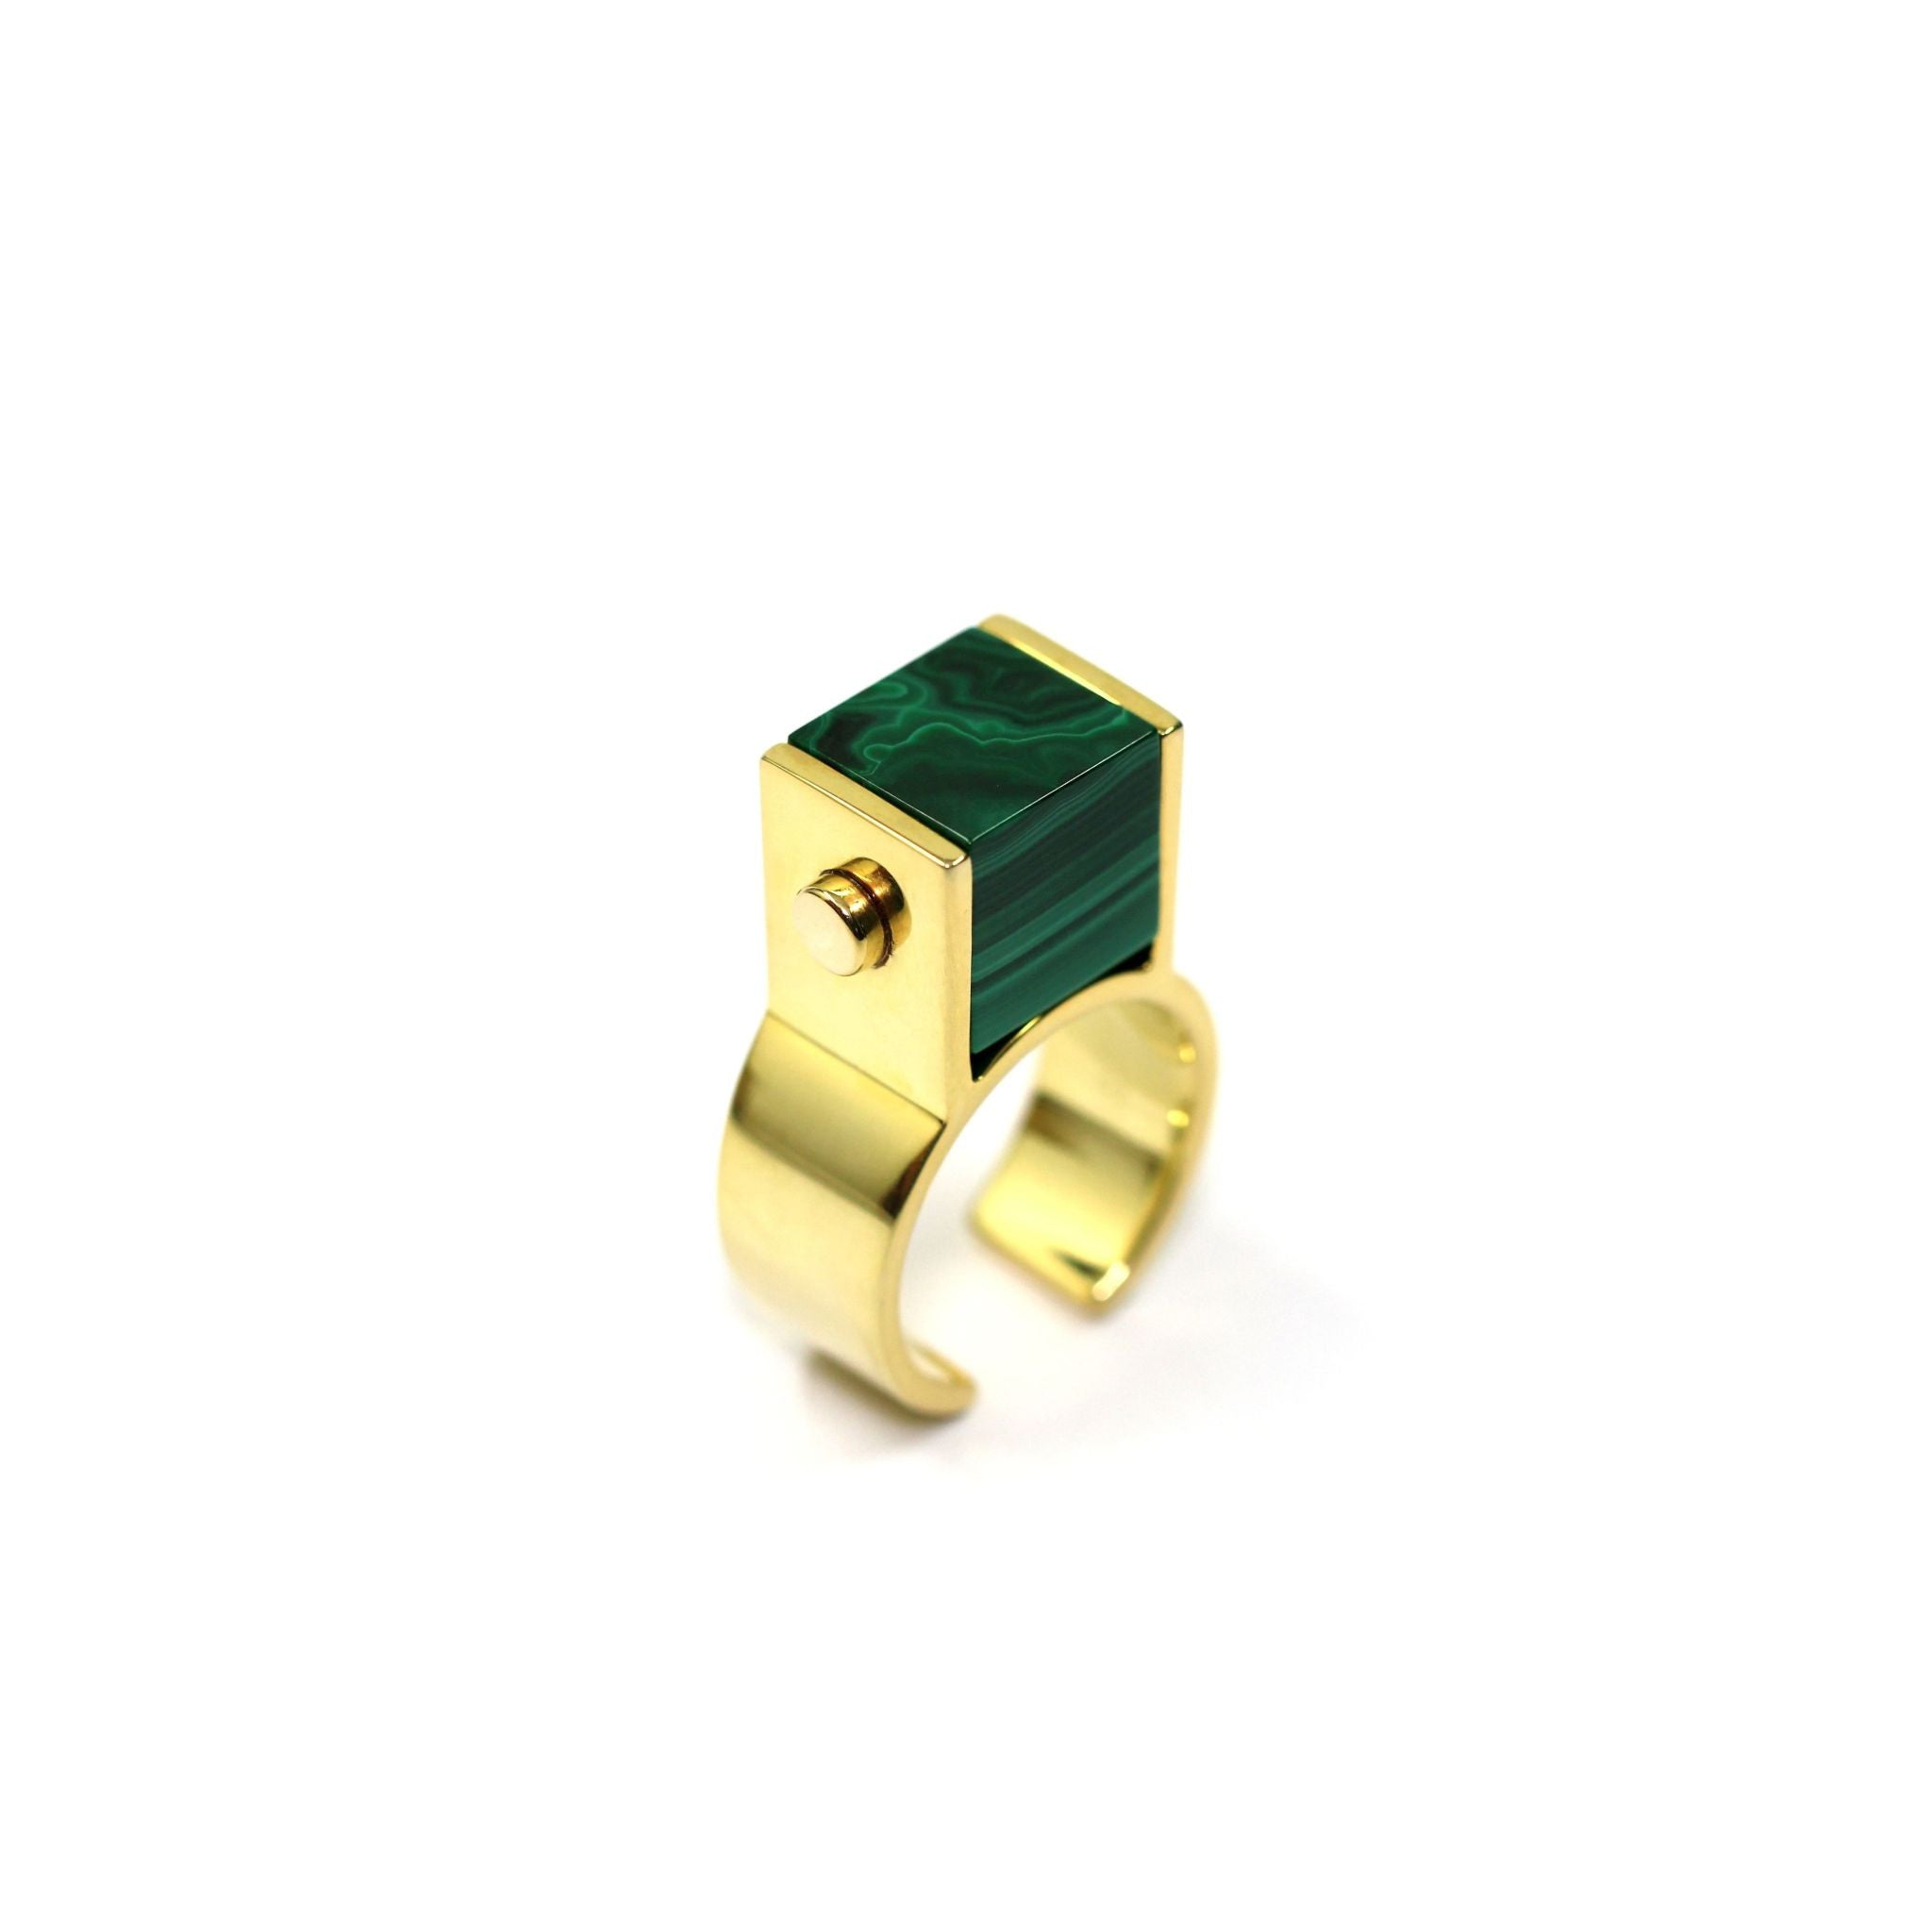 Fang Yuan Square Bead Ring-Rings-Everard & Wang